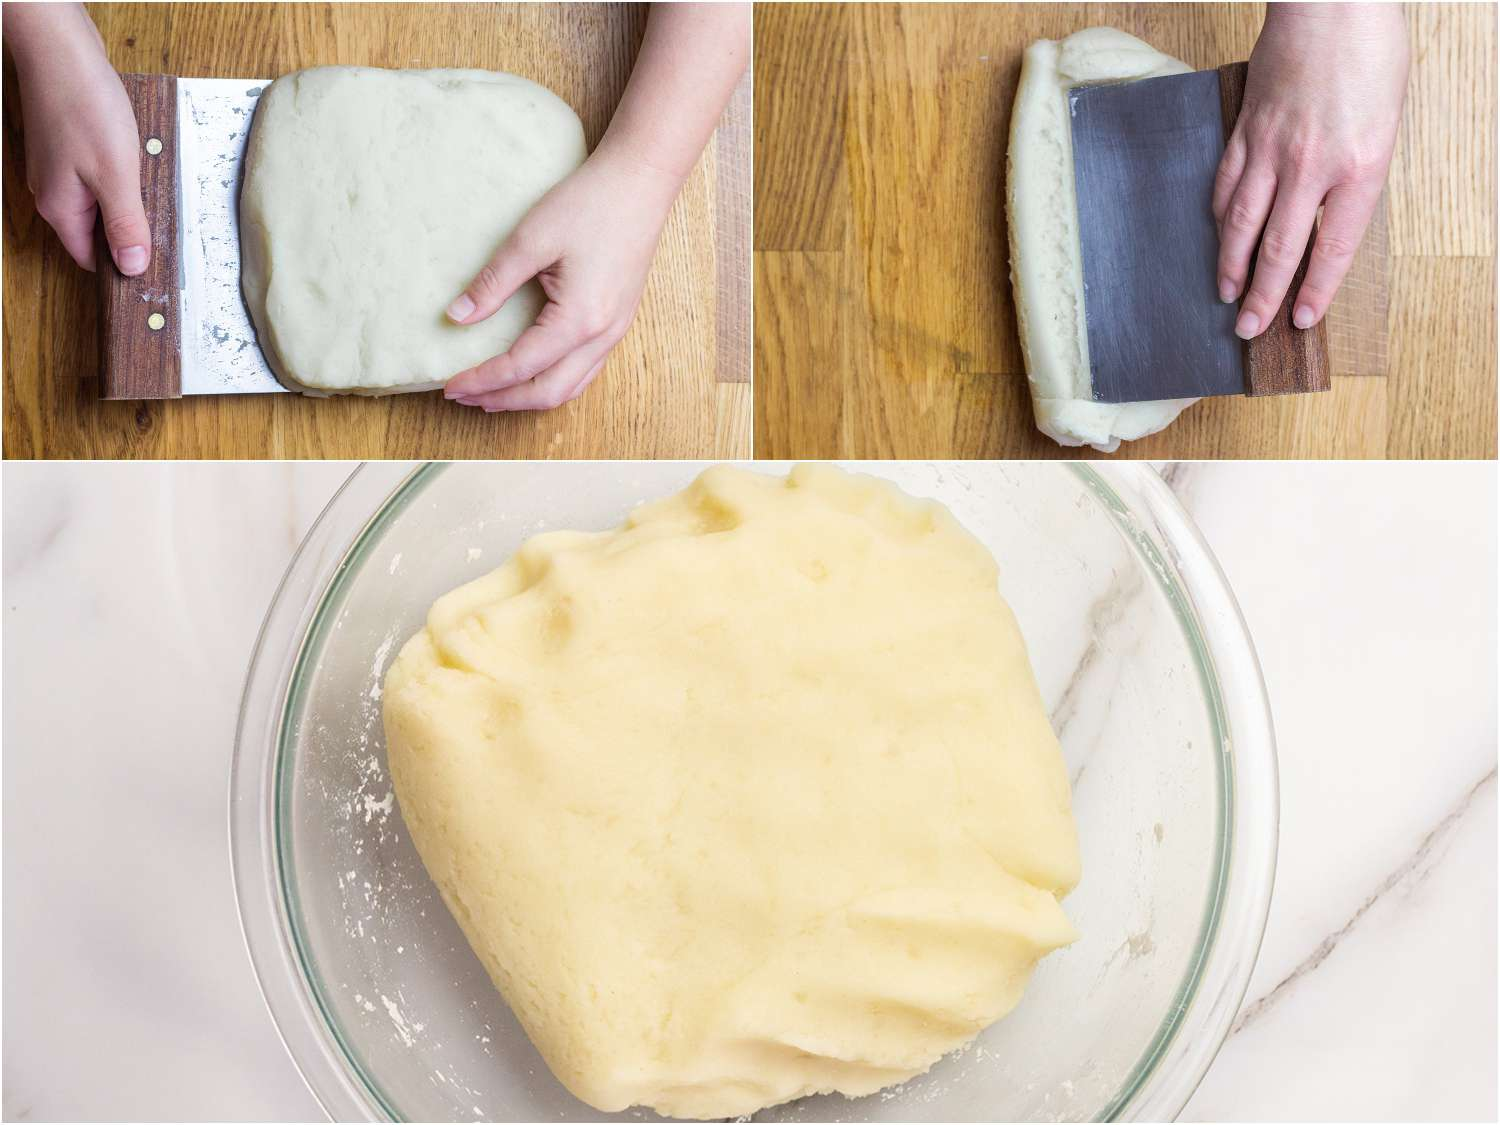 Collage of photos showing kneading of potato and potato starch dough